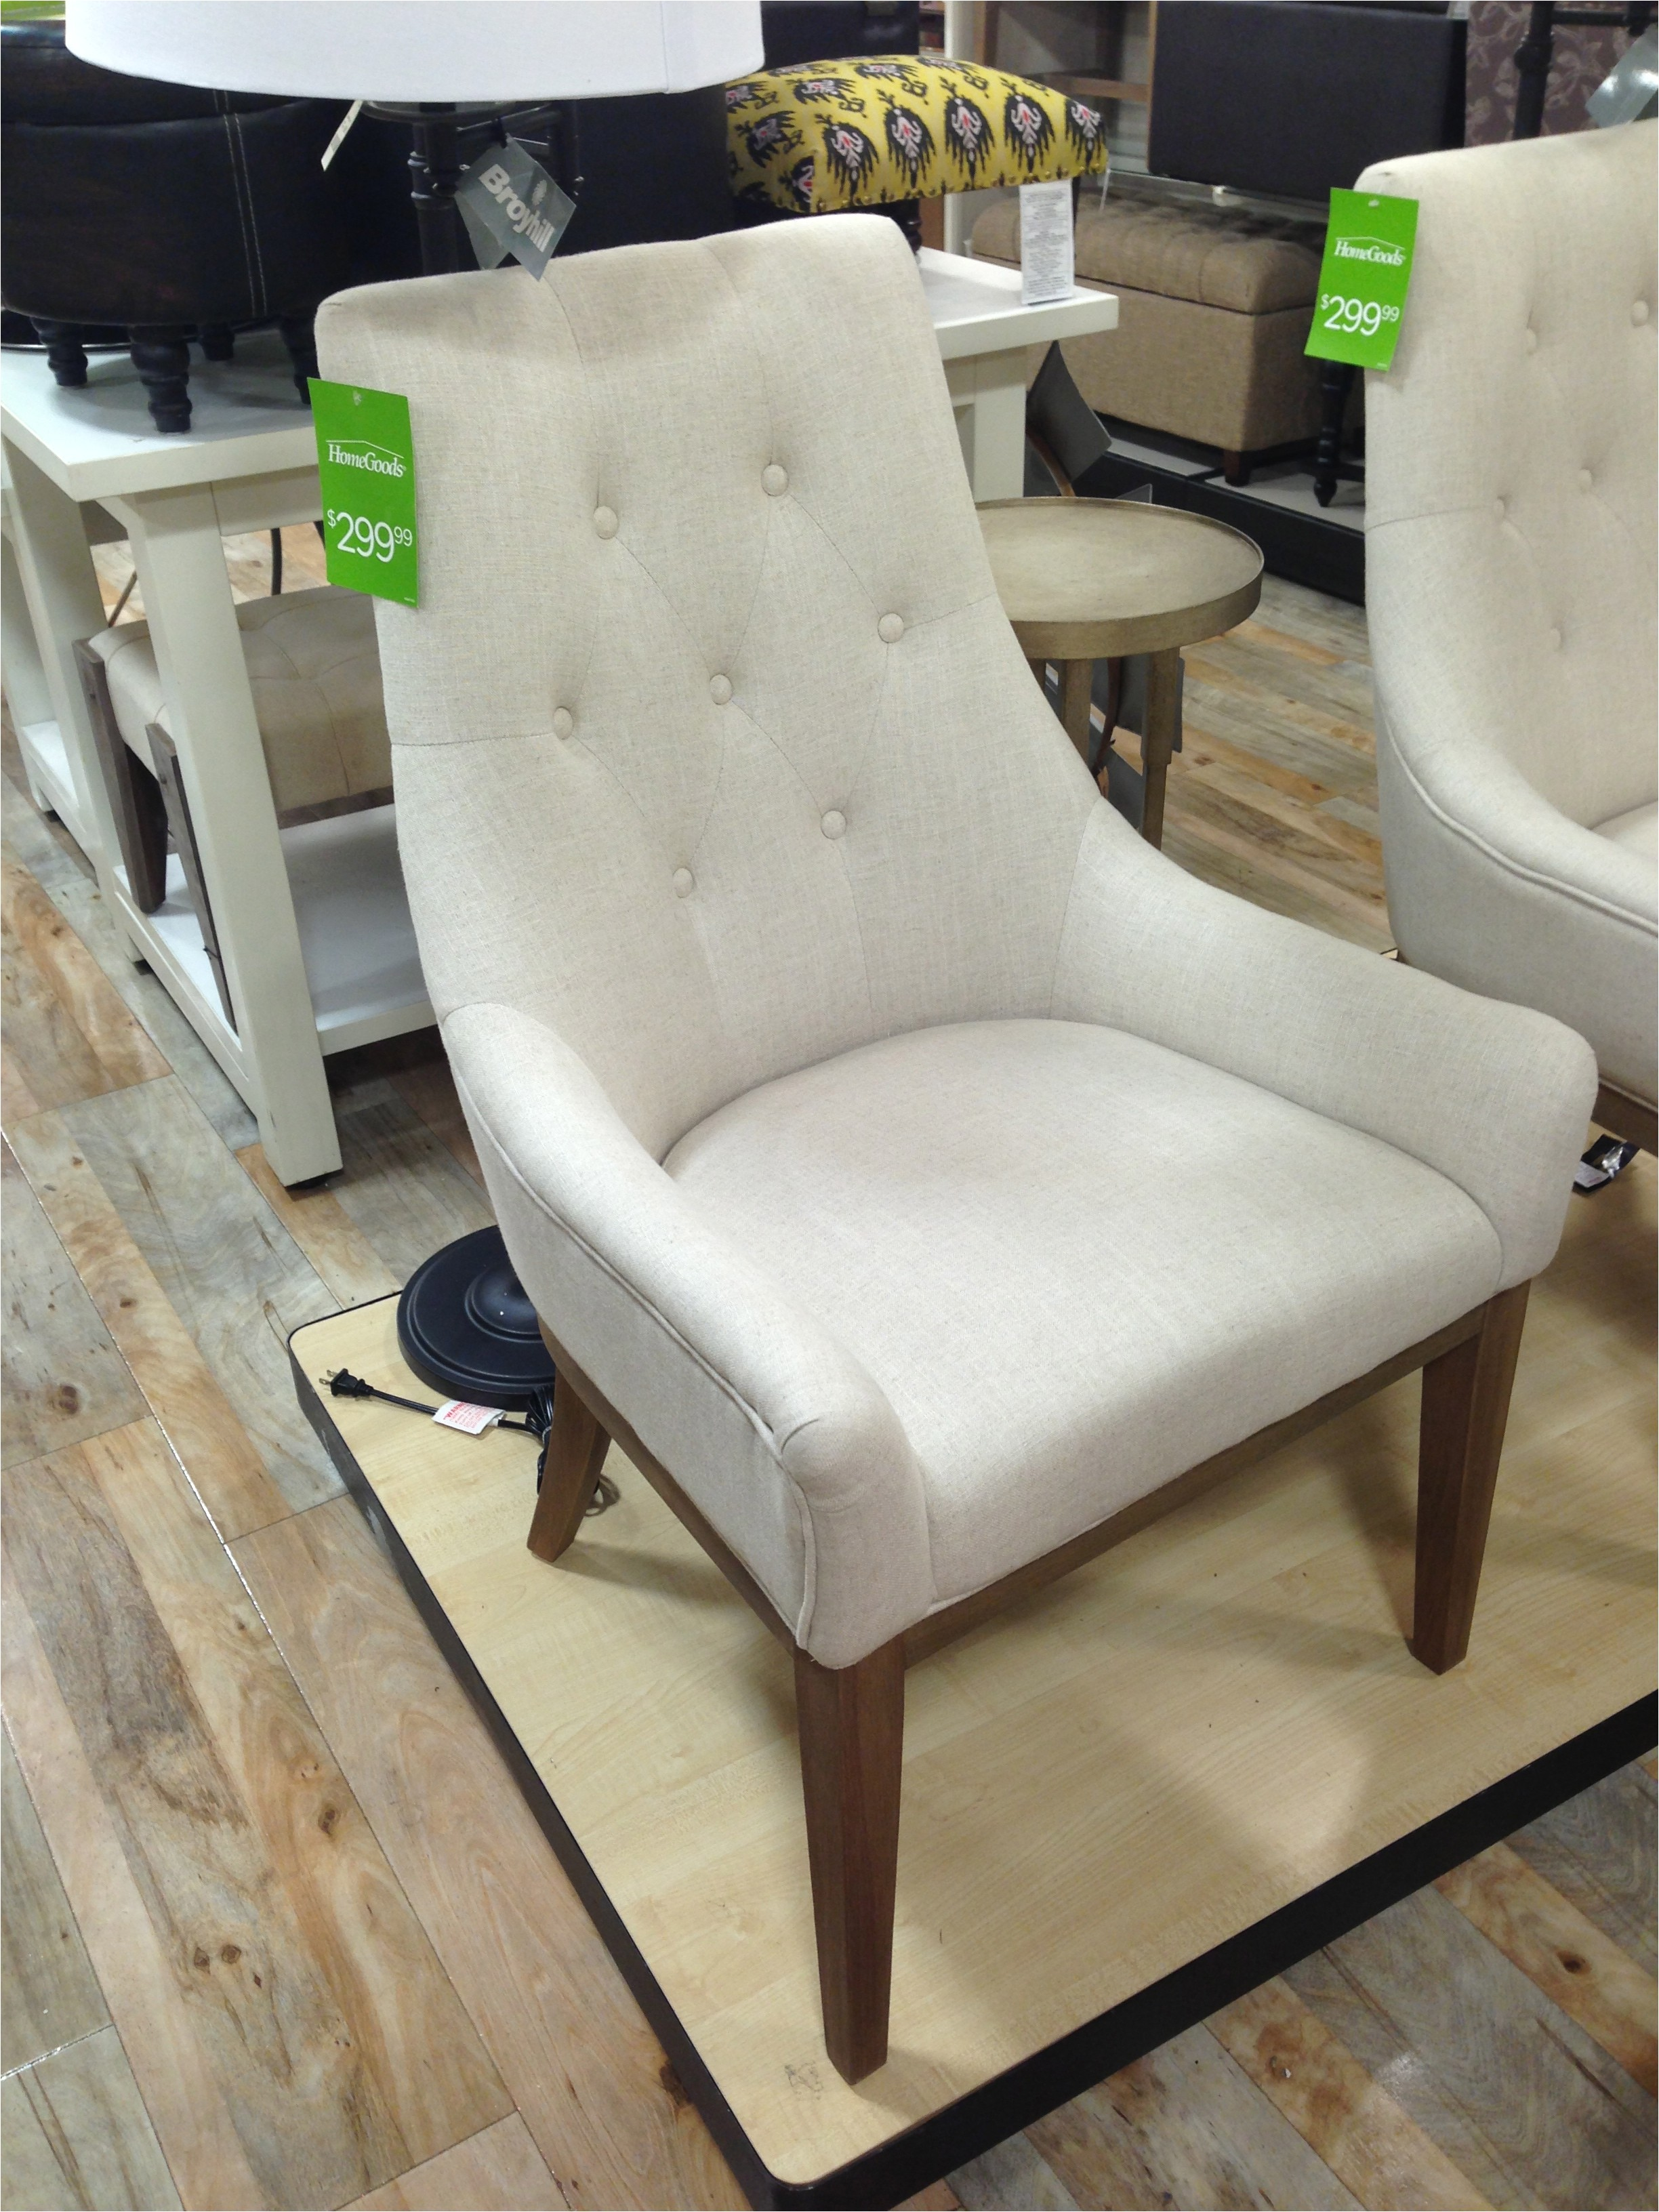 Nicole Miller Grey Dining Chairs Homegoods the Oversized Edition